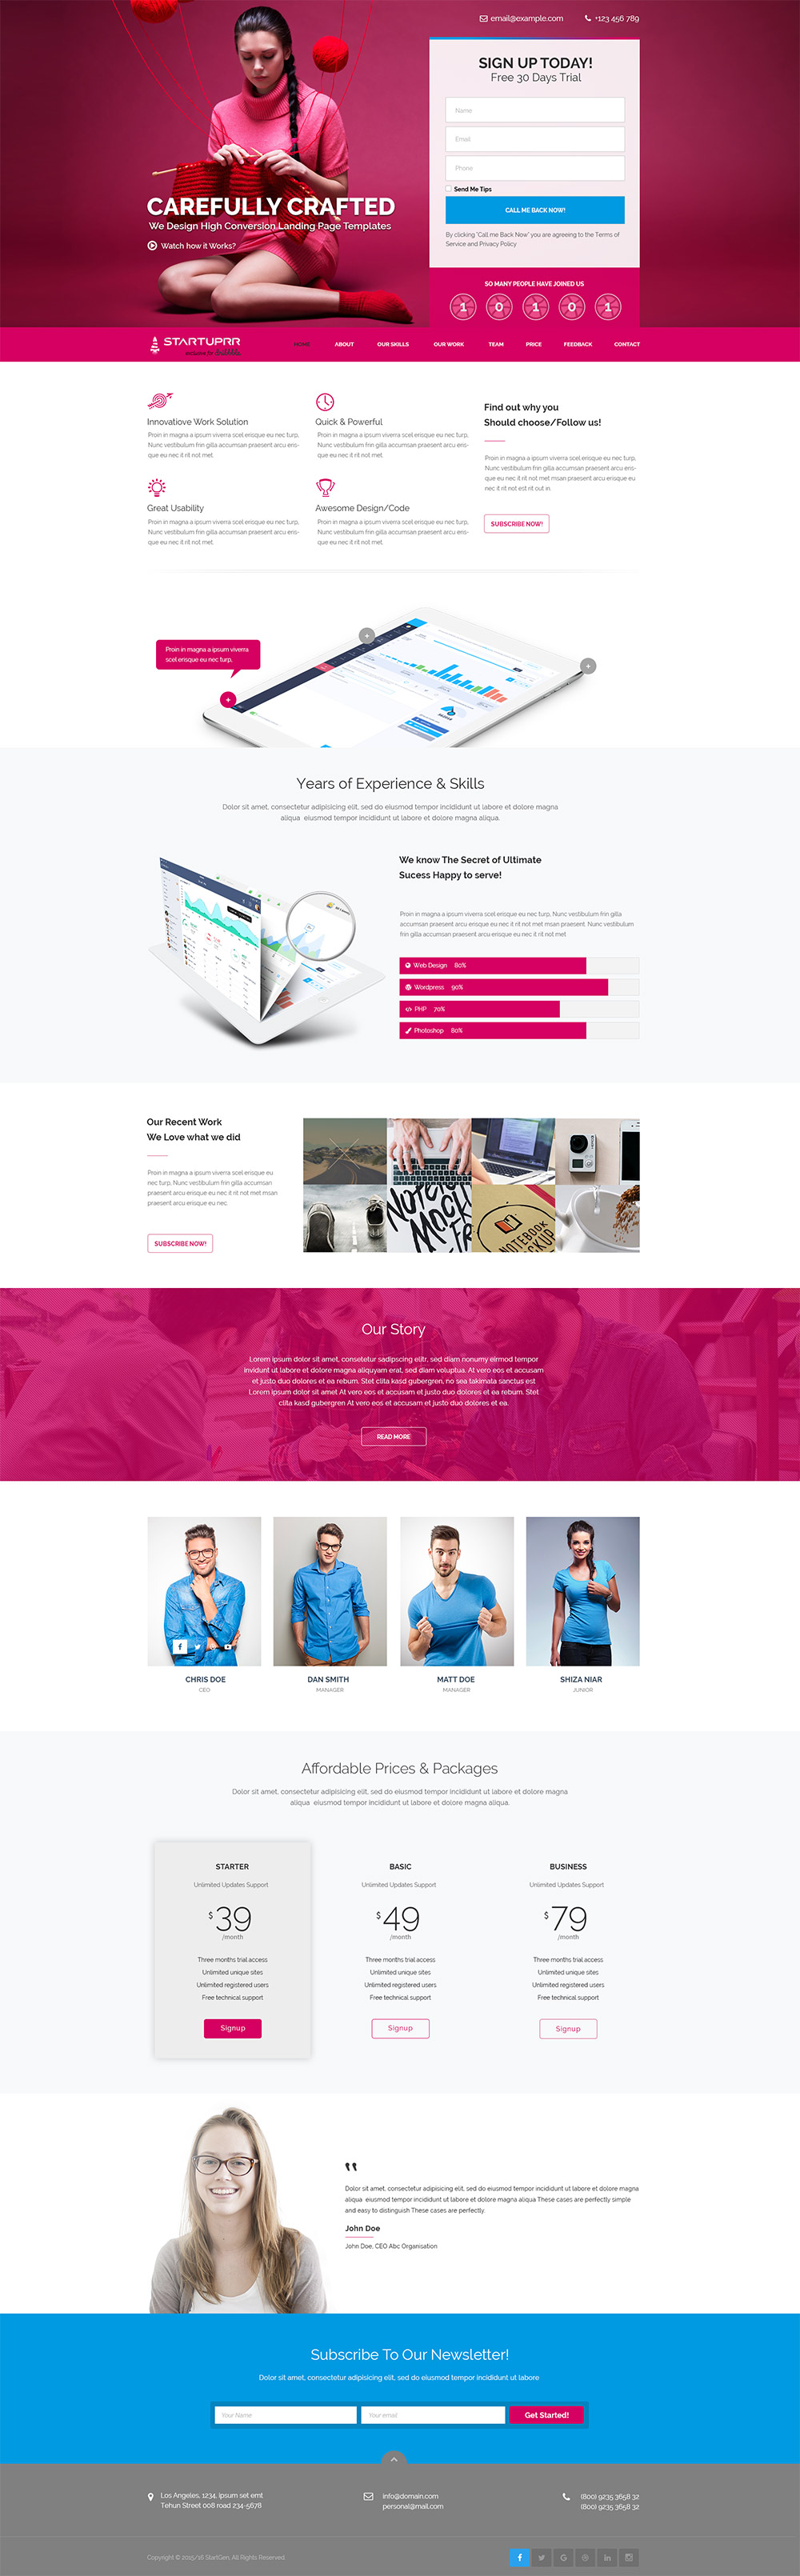 High quality 50 free corporate and business web templates psd product and services website landing page template free psd wajeb